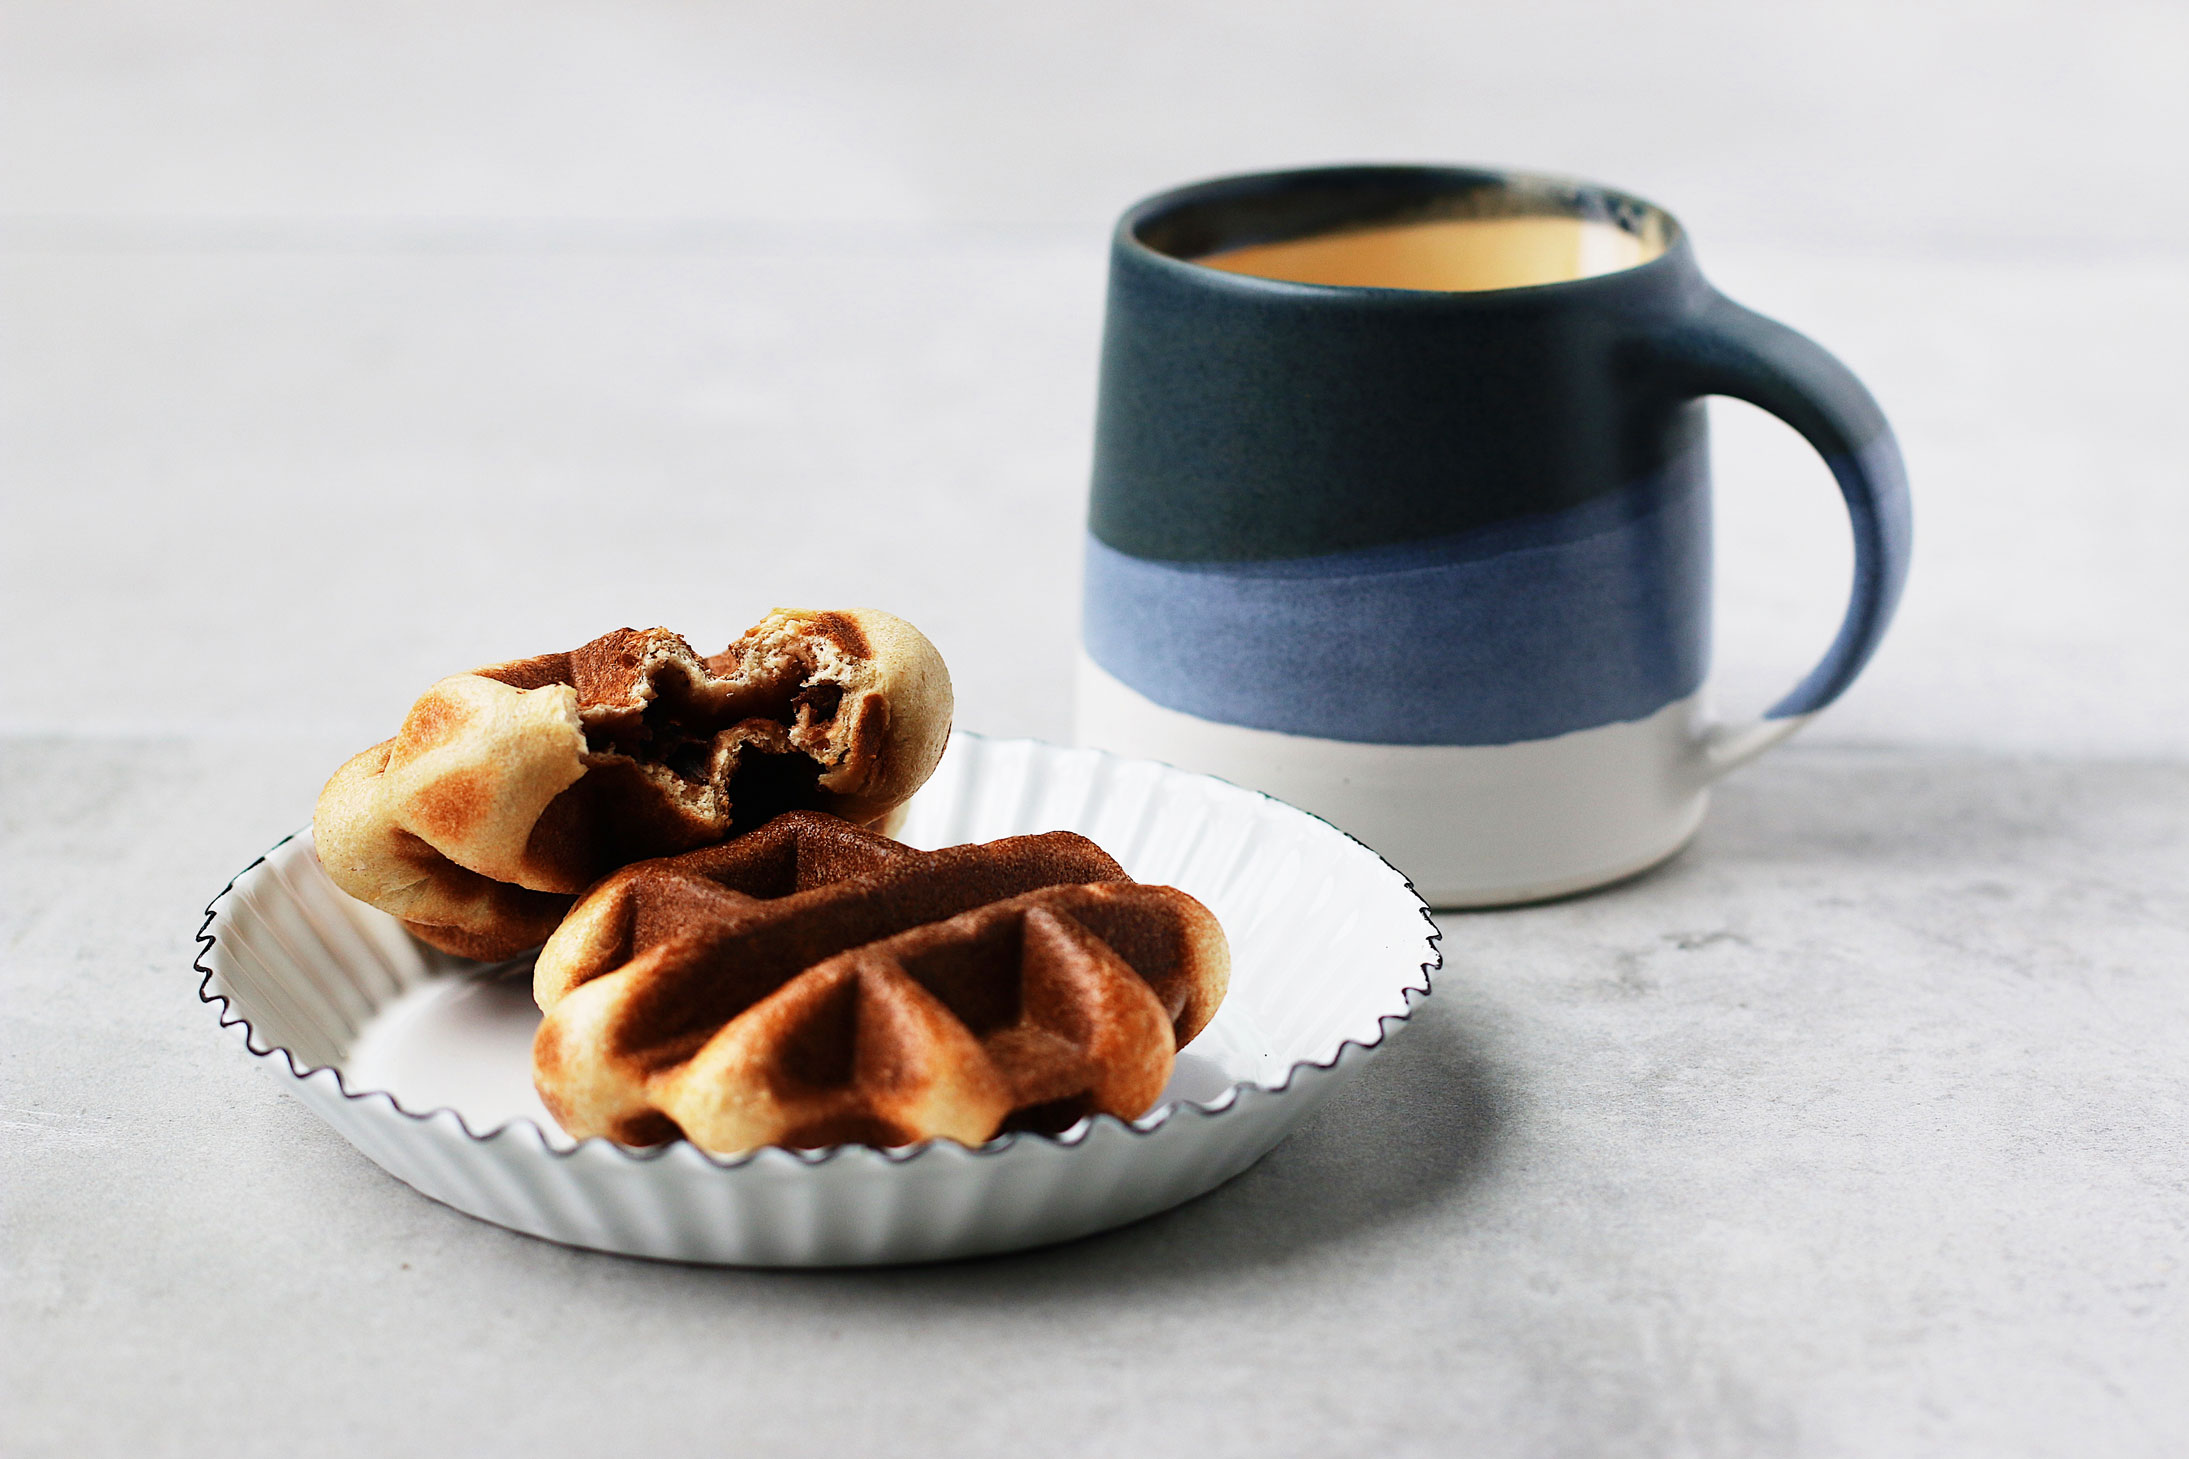 Mini-Overnight-Yeasted-Waffles-with-Red-Bean-Filling-blue-mug-coffee